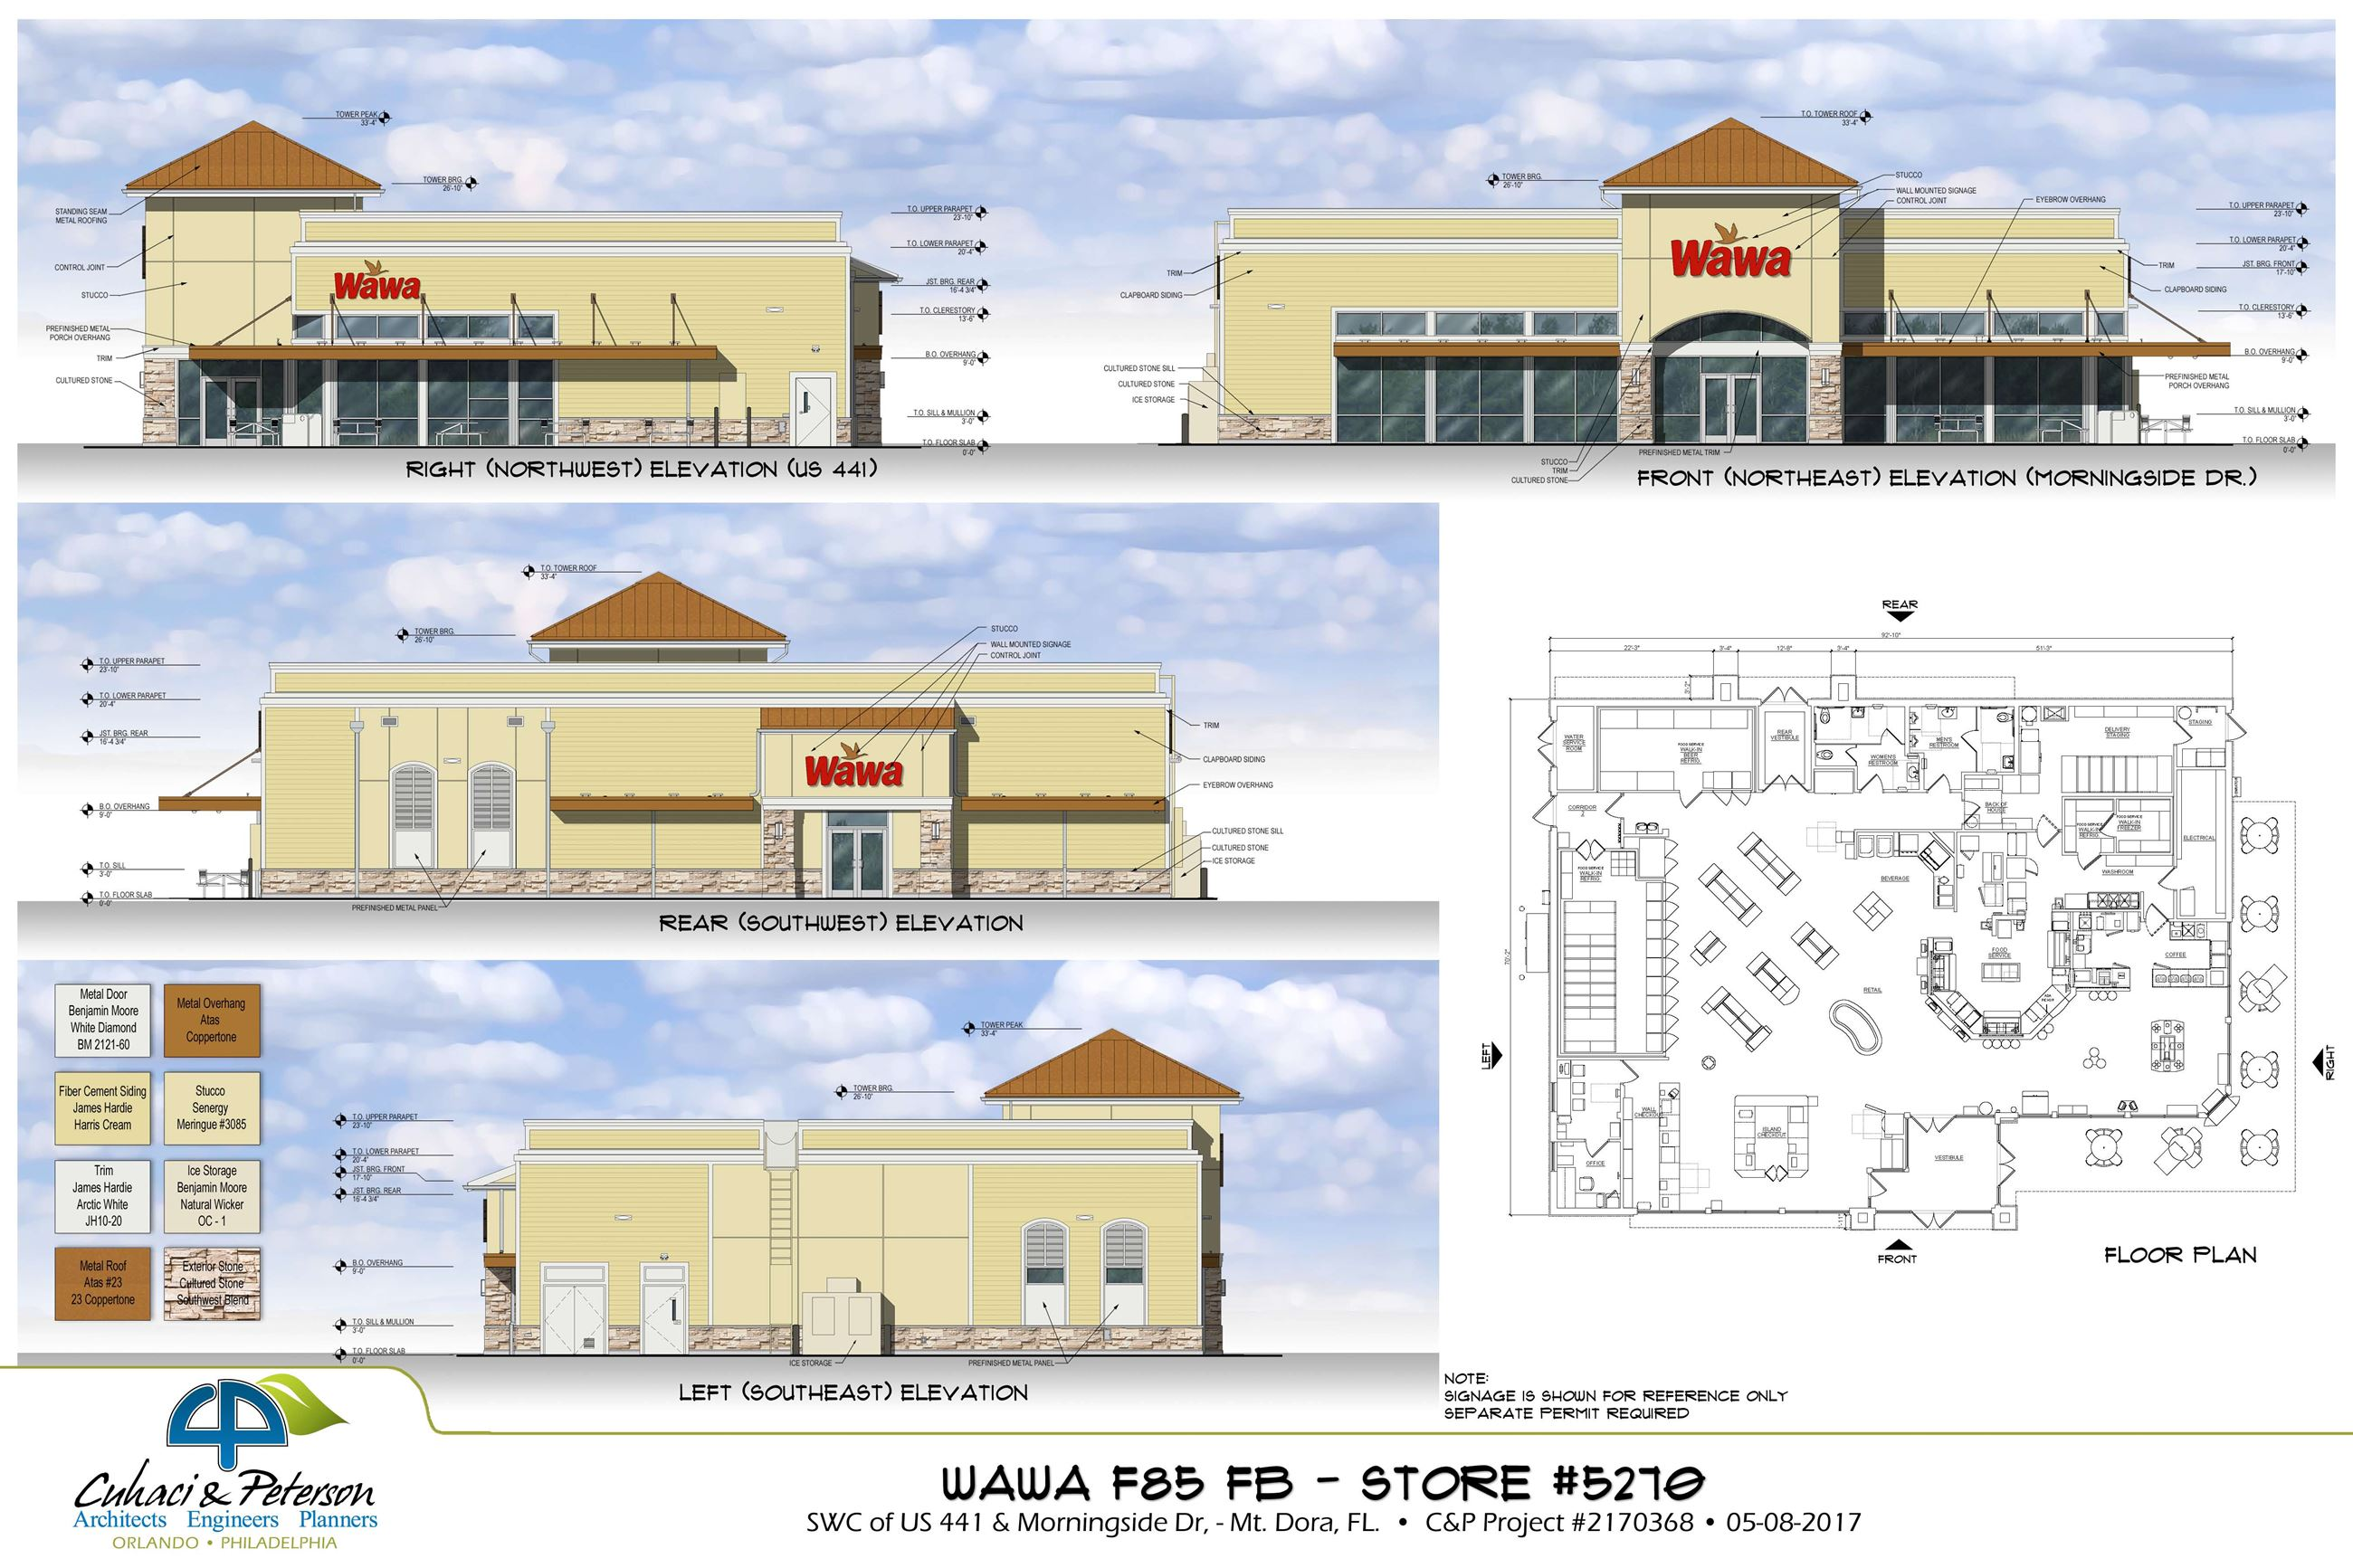 Wawa Ext Elev Rendering  Floor Plan